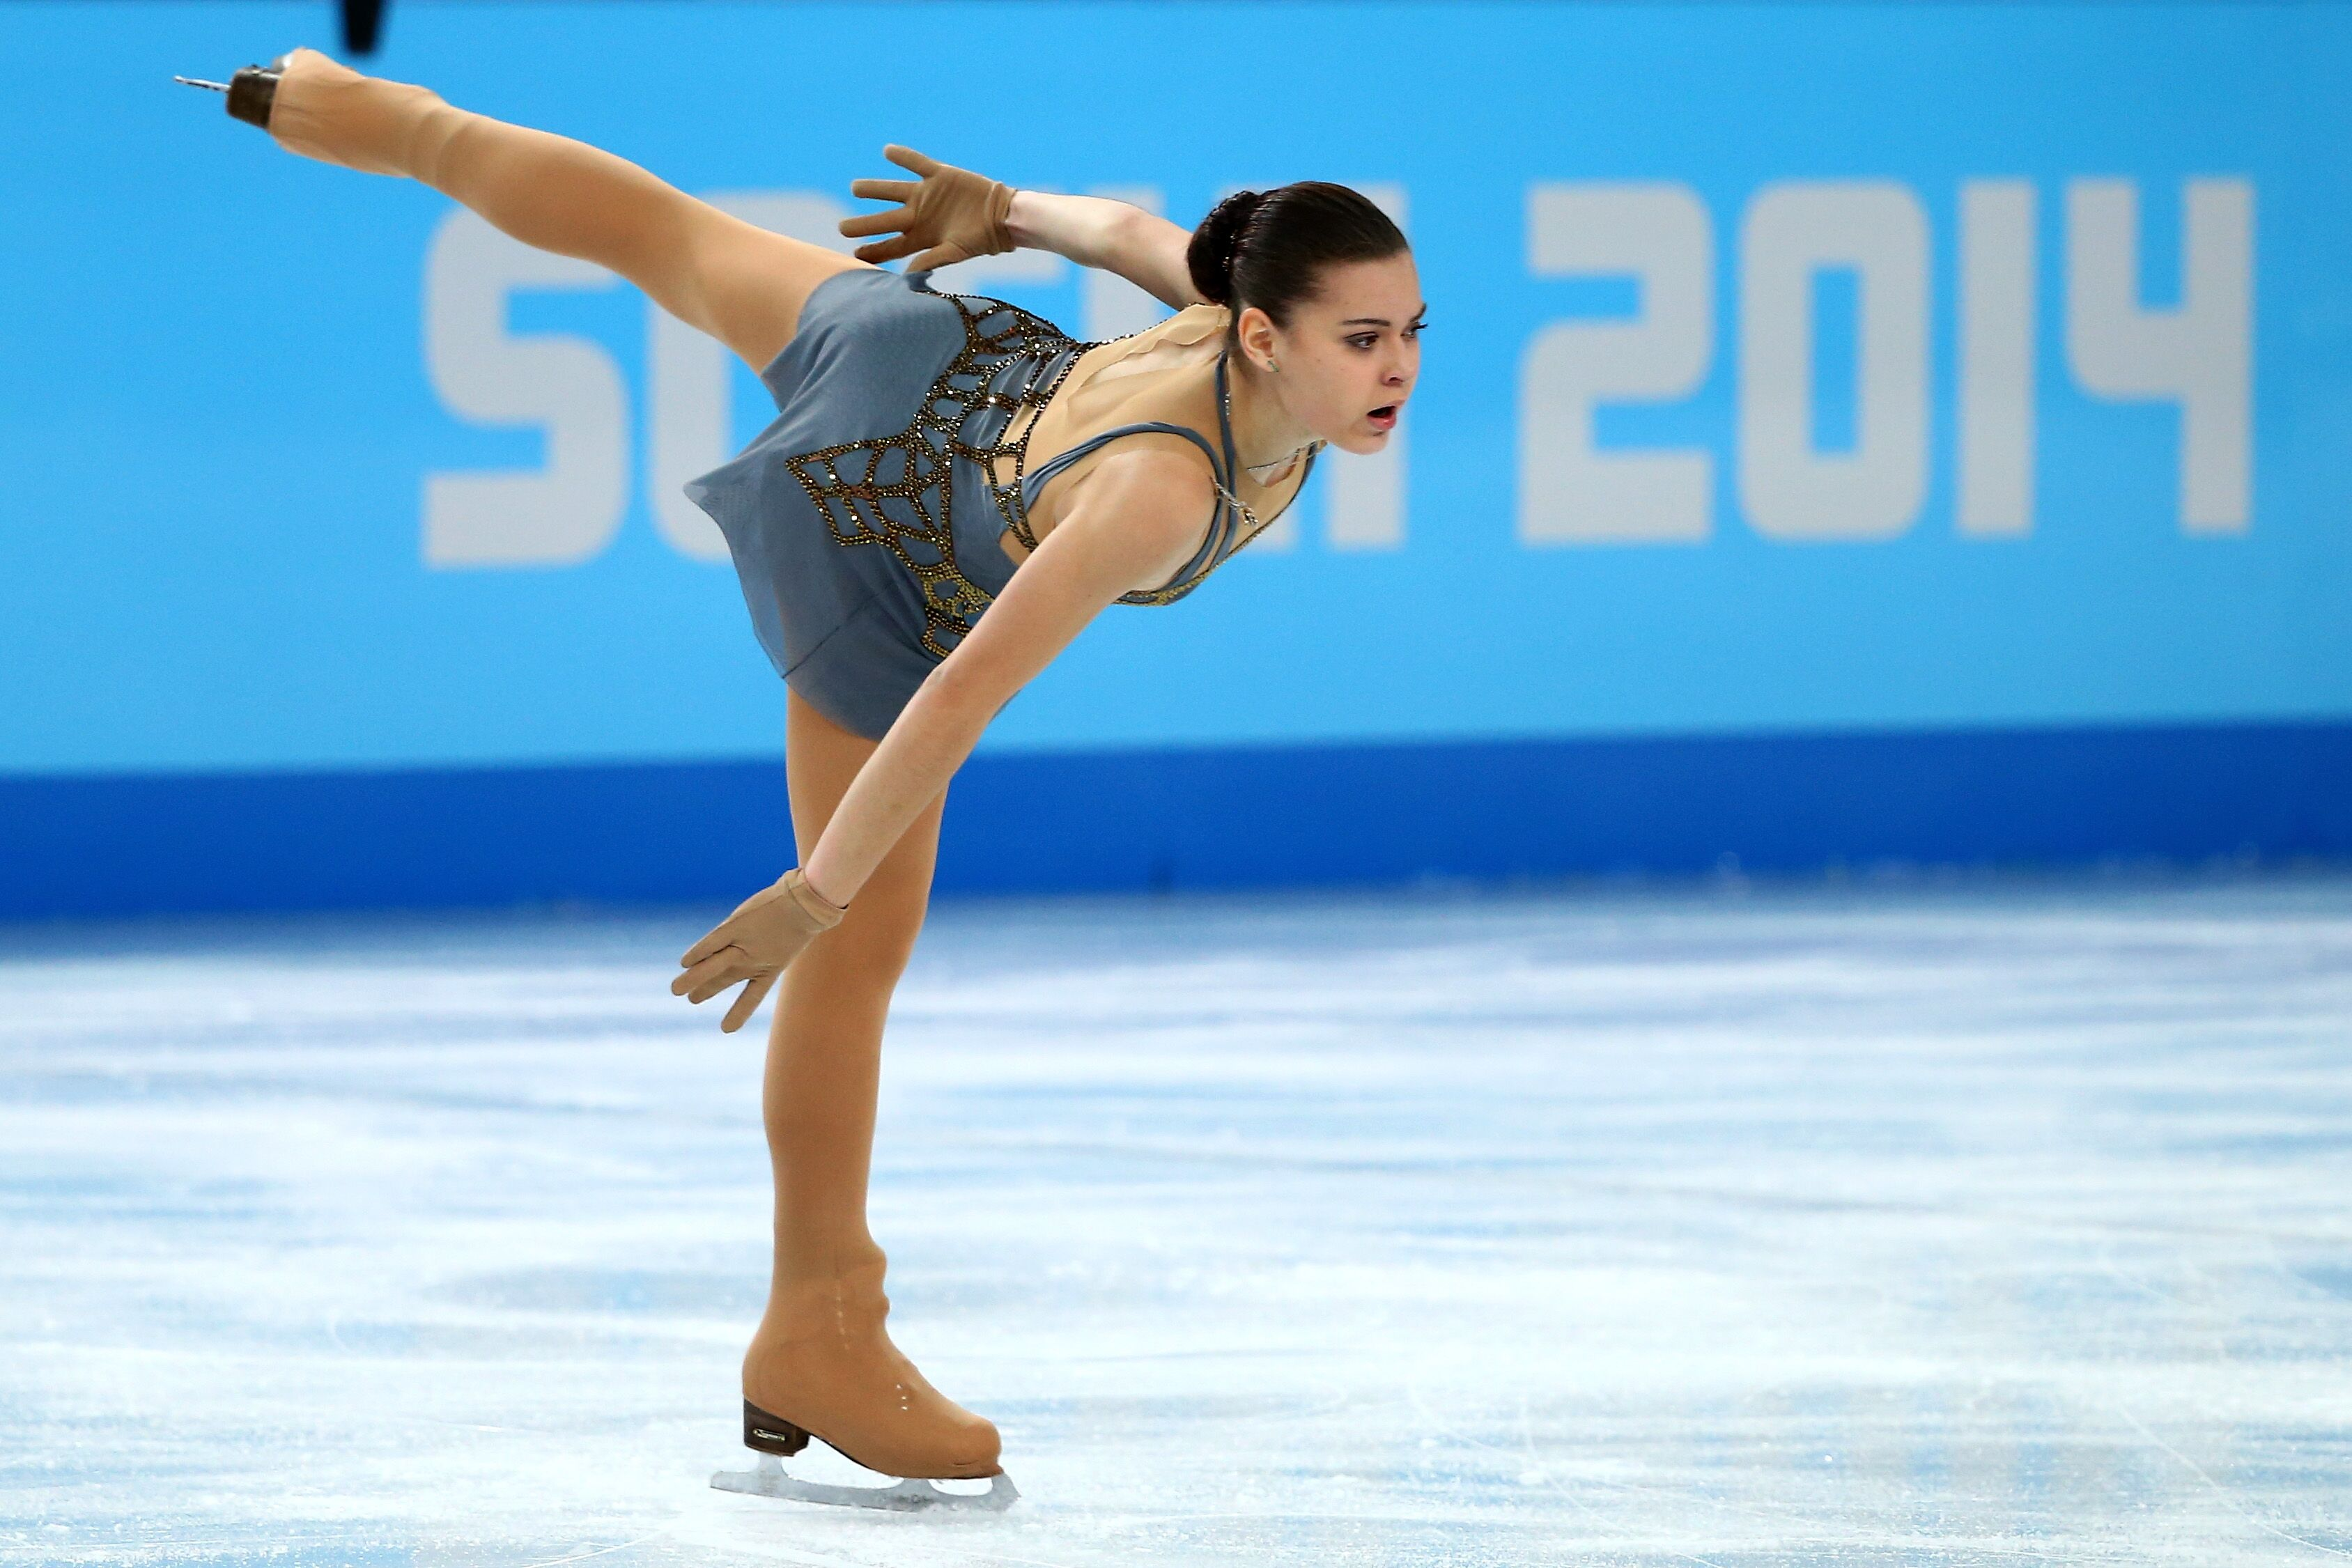 Sotnikova Possible Case Of Cheating In Russian Doping Scandal